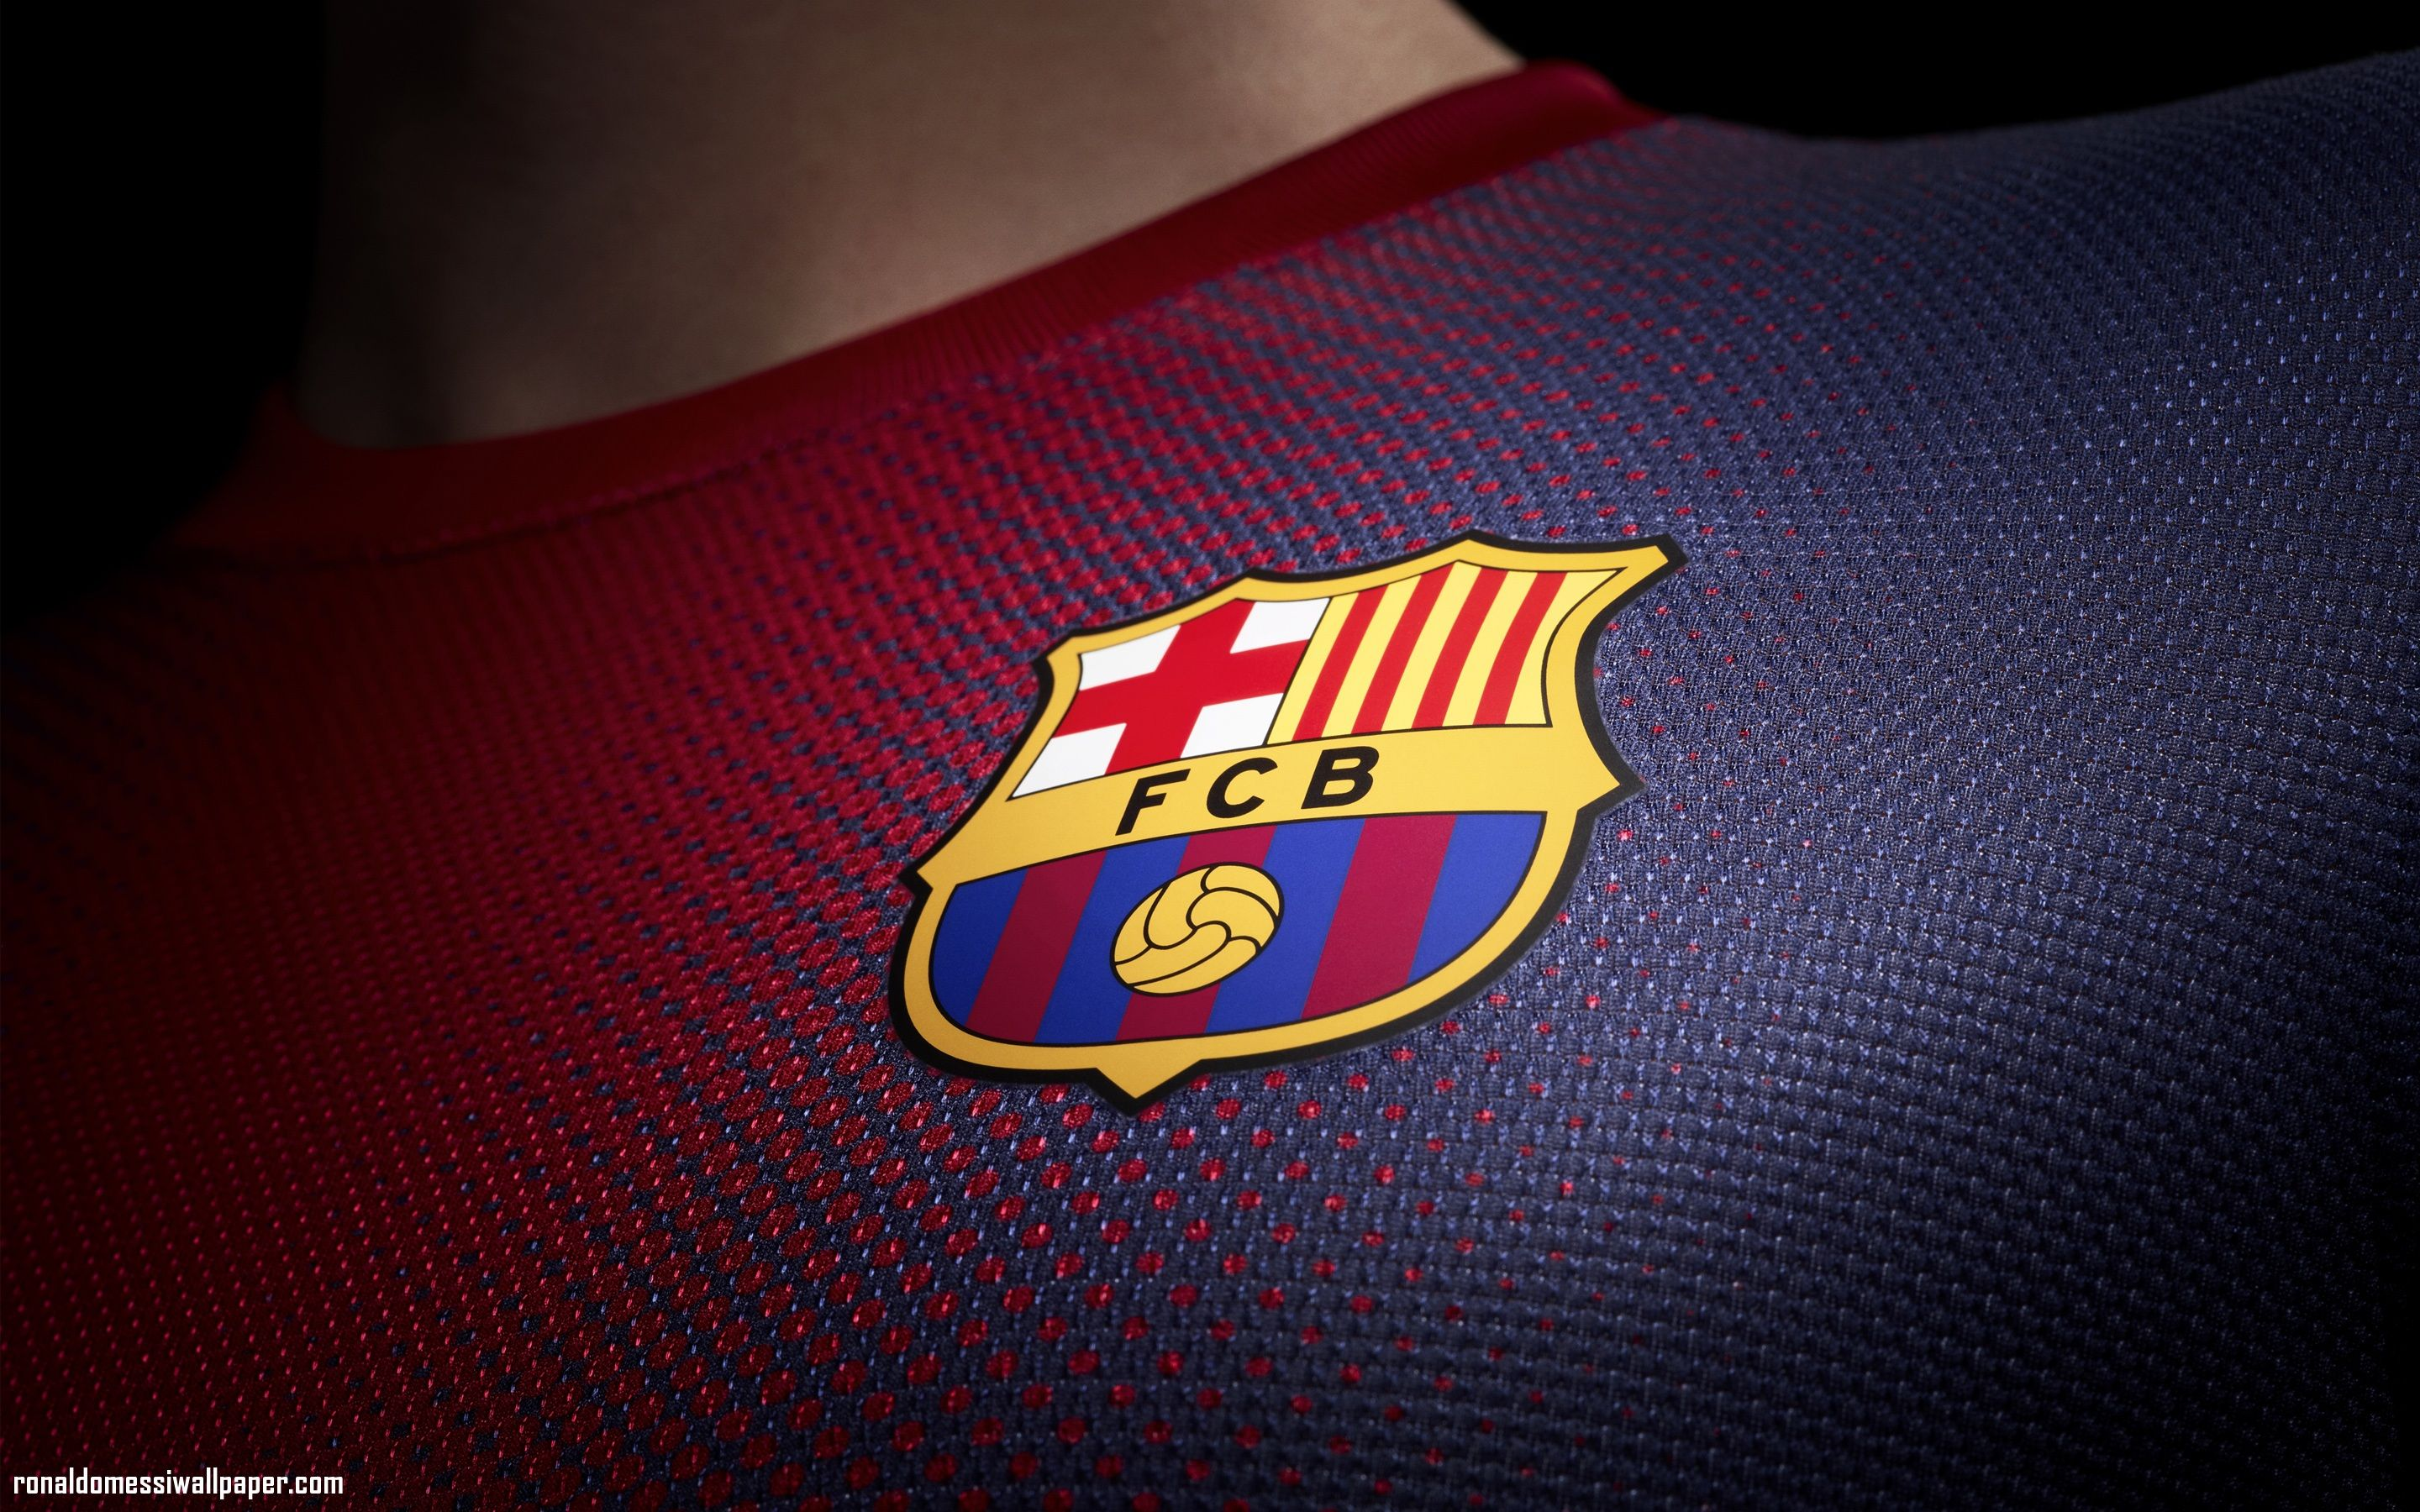 Live Wallpaper Of Fc Barcelona | Ronaldo Messi Wallpaper